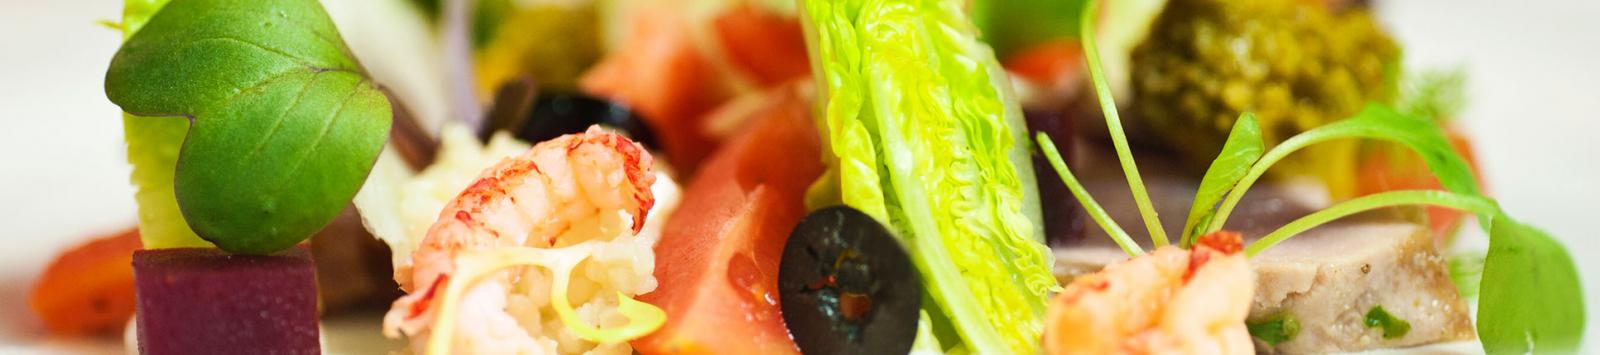 Salade-close-up